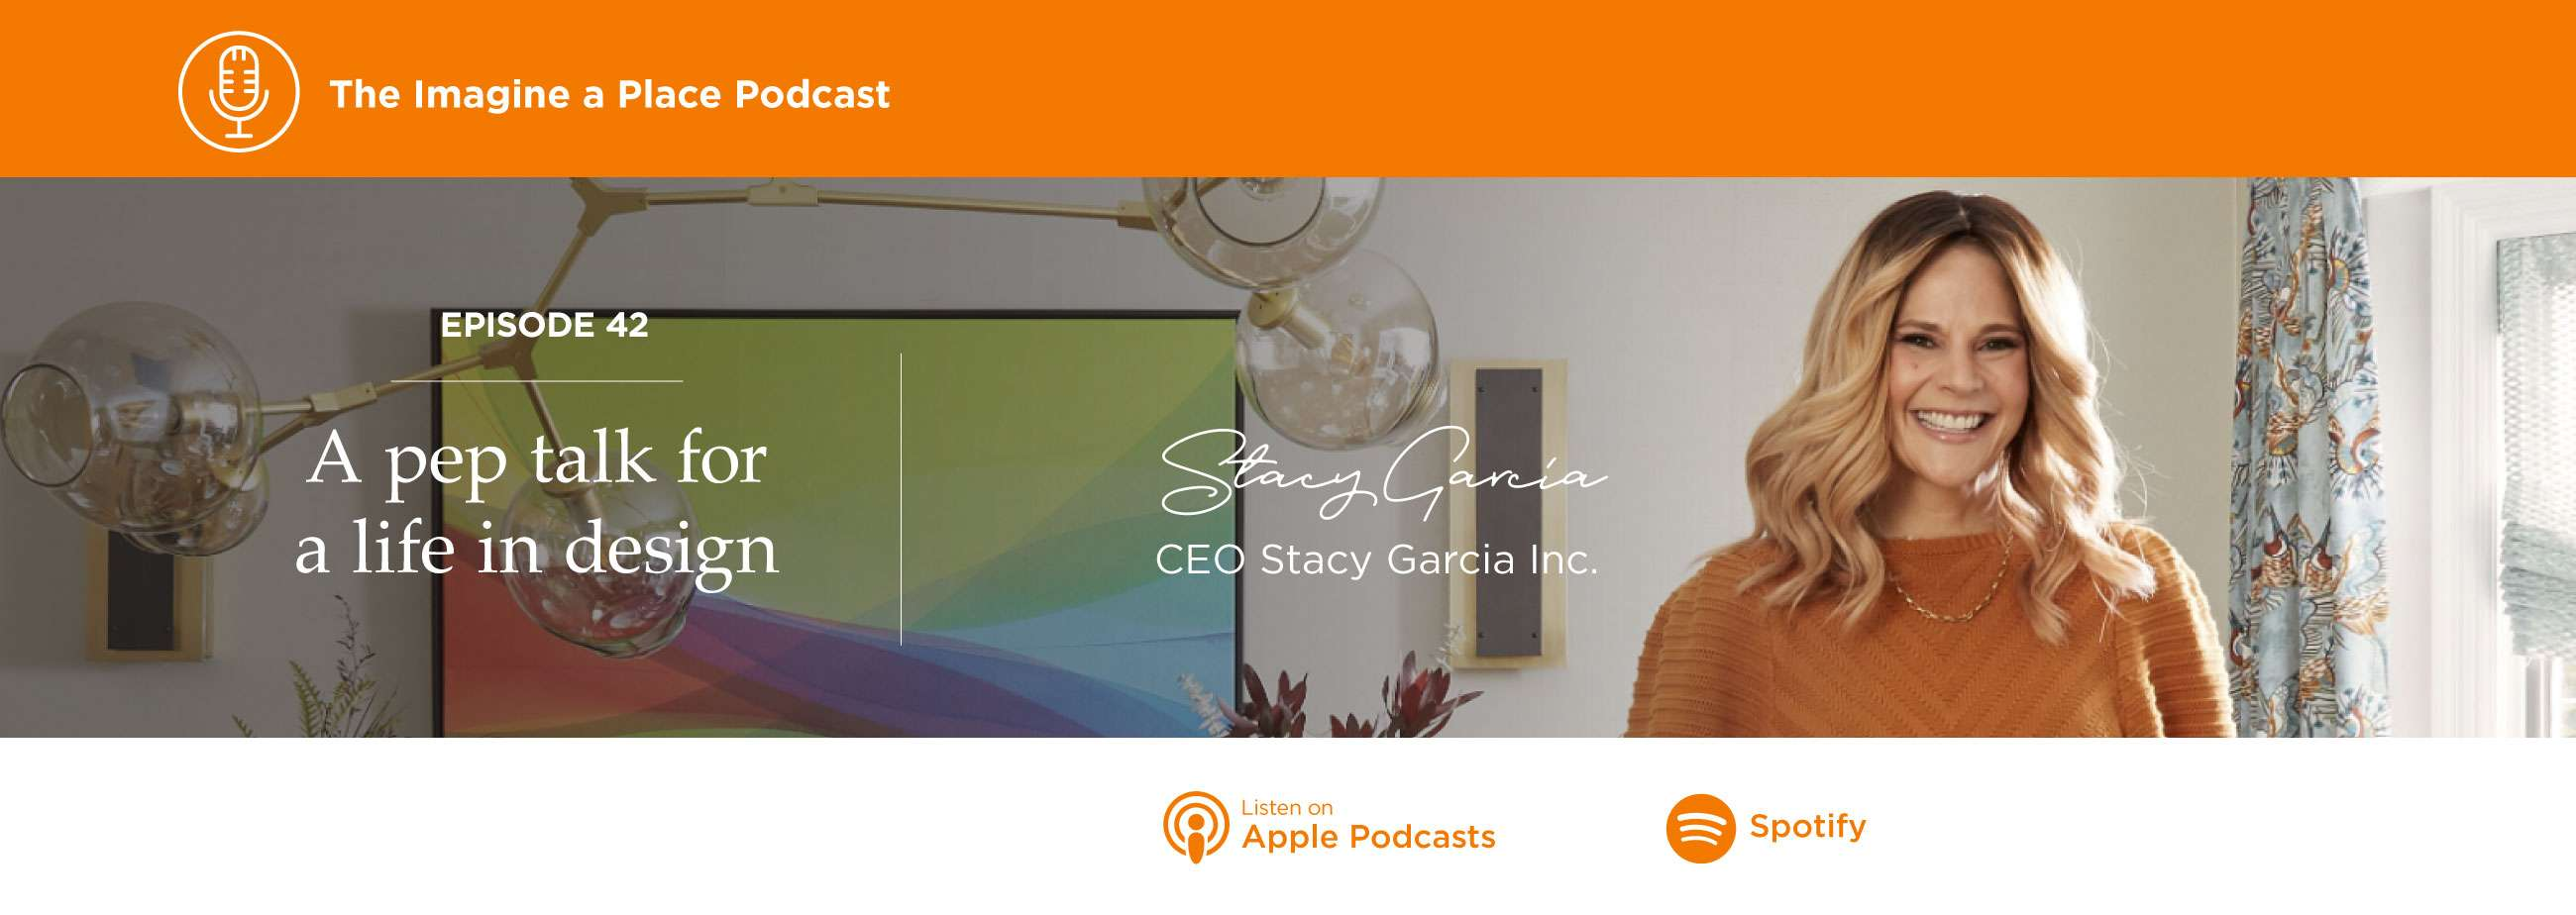 Imagine a Place Podcast with Stacy Garcia